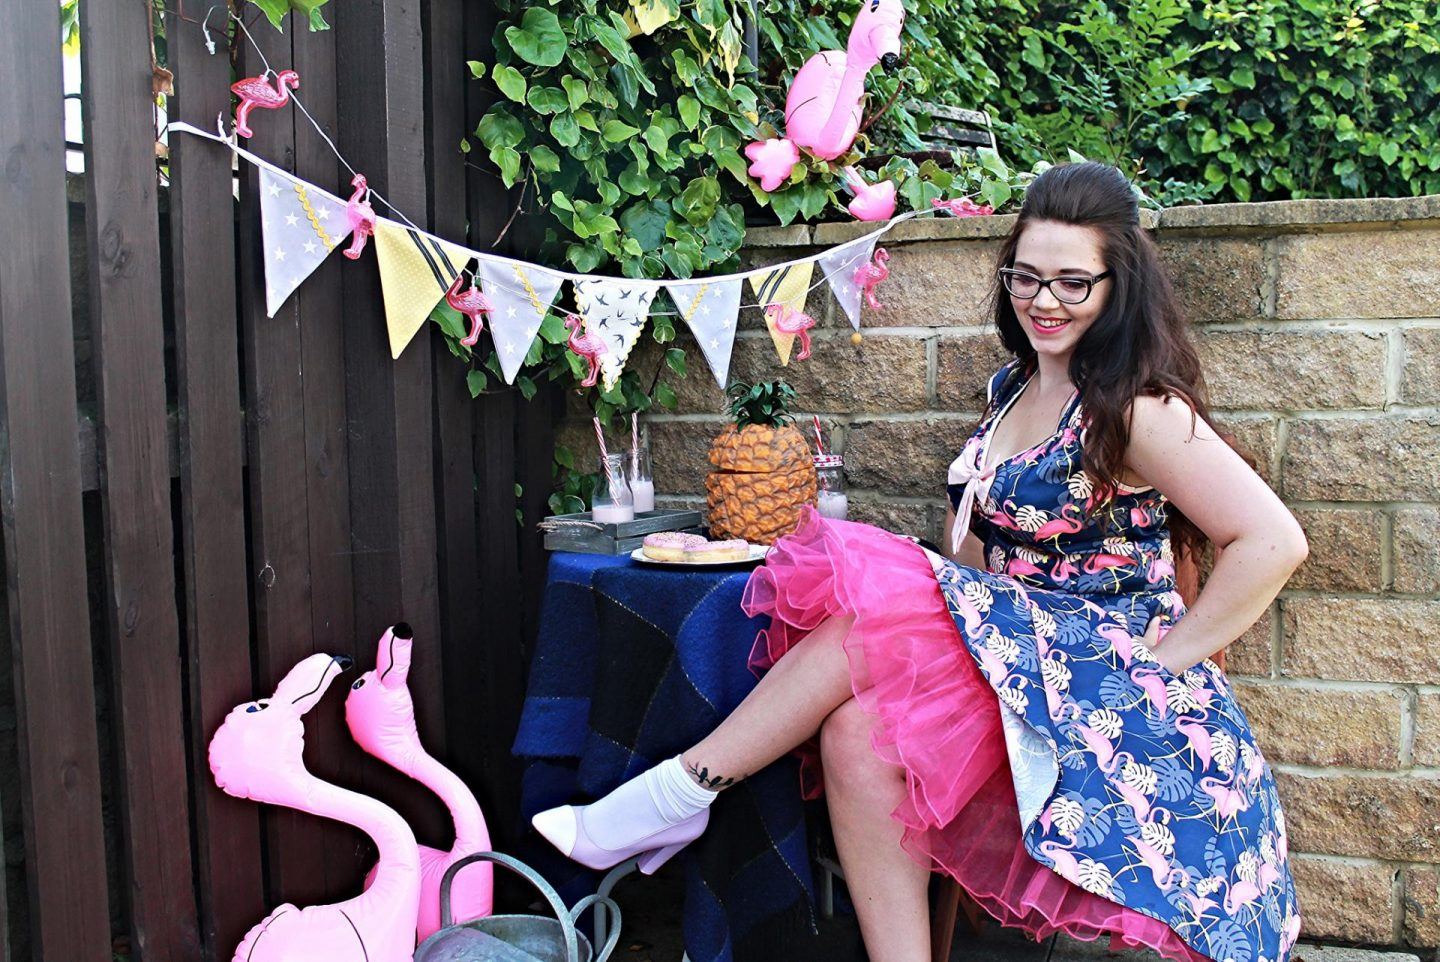 A right good garden party c/o Lady V & Totally-Funky // Flamingo Isabella Dress & Lavender Yull Shoes // OOTD